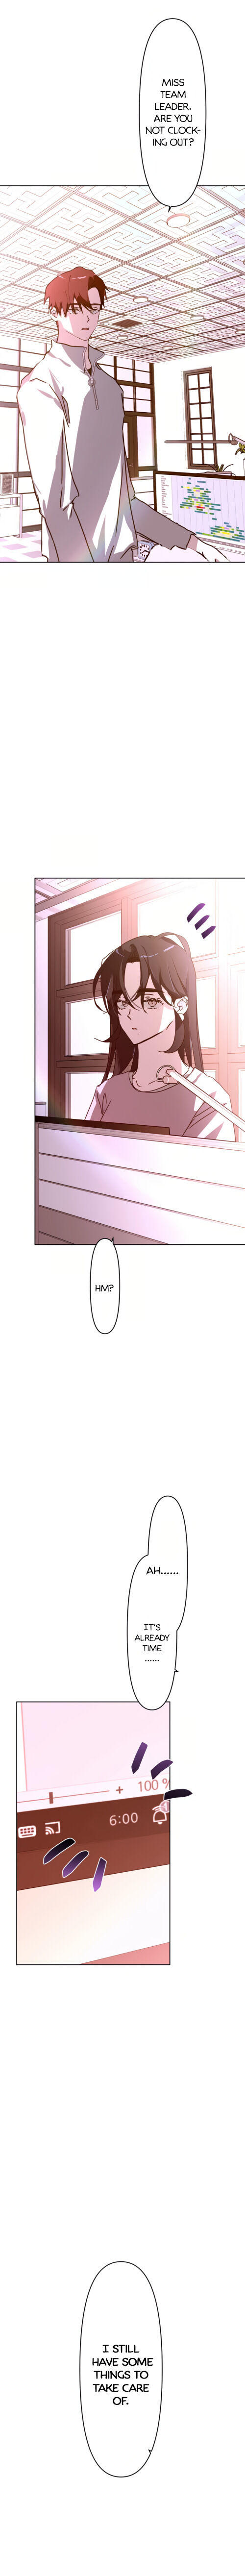 Another'S Love Story Chapter 10 page 15 - Mangakakalots.com